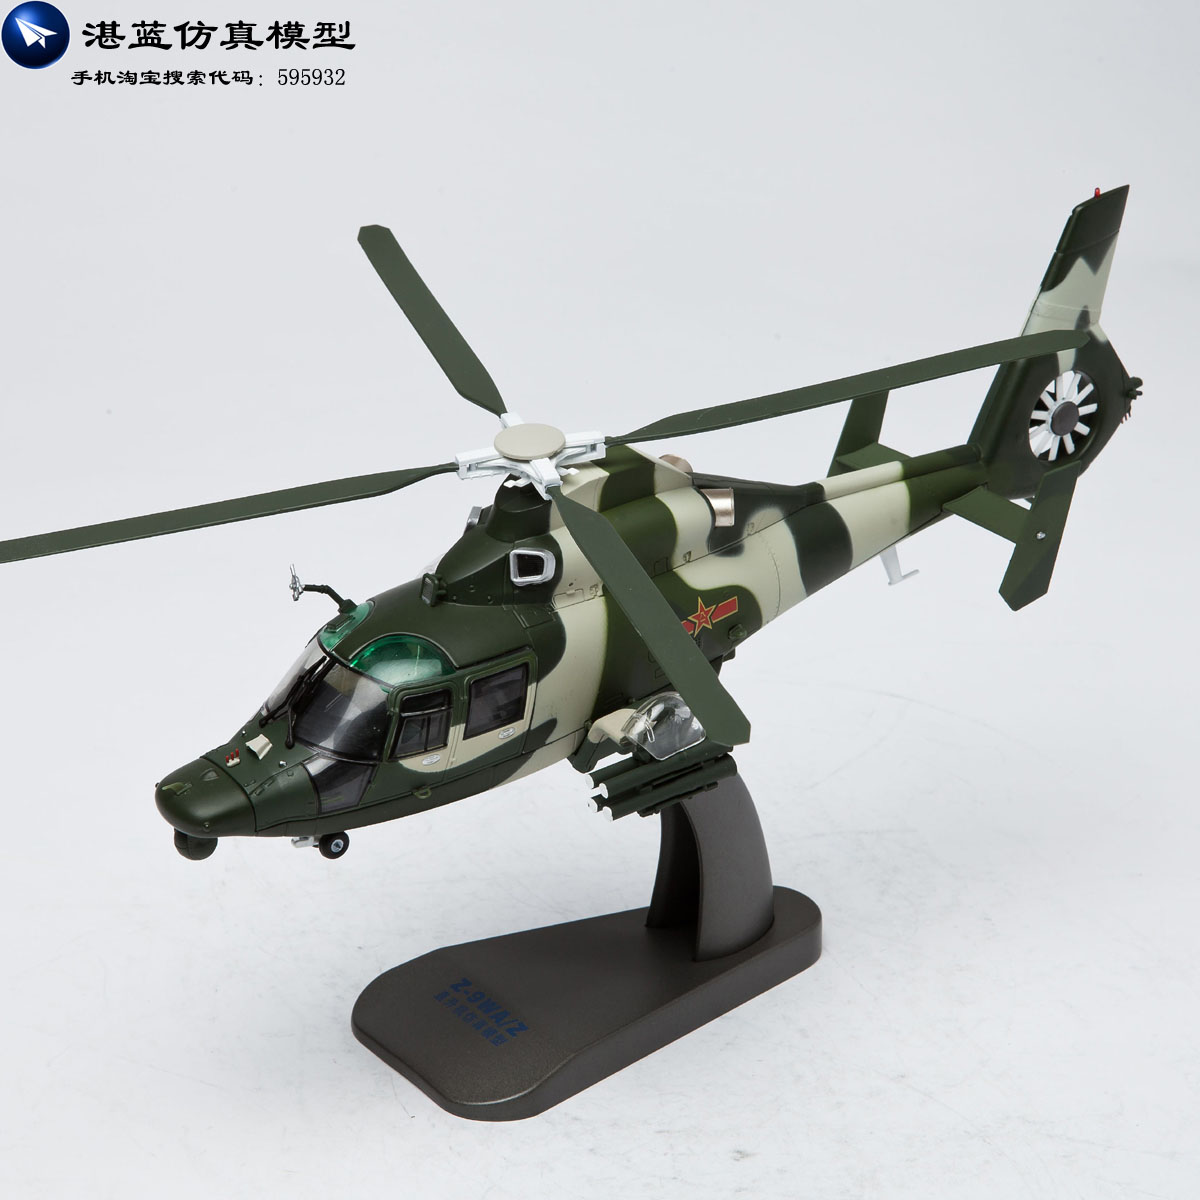 YJ 1/48 Scale Military Model Toys HAMC Z-9/Harbin Z-9 Military Helicopter Diecast Metal Plane Model Toy For Collection/Gift revell model 1 25 scale 85 7457 69 camaro z 28 rs plastic model kit